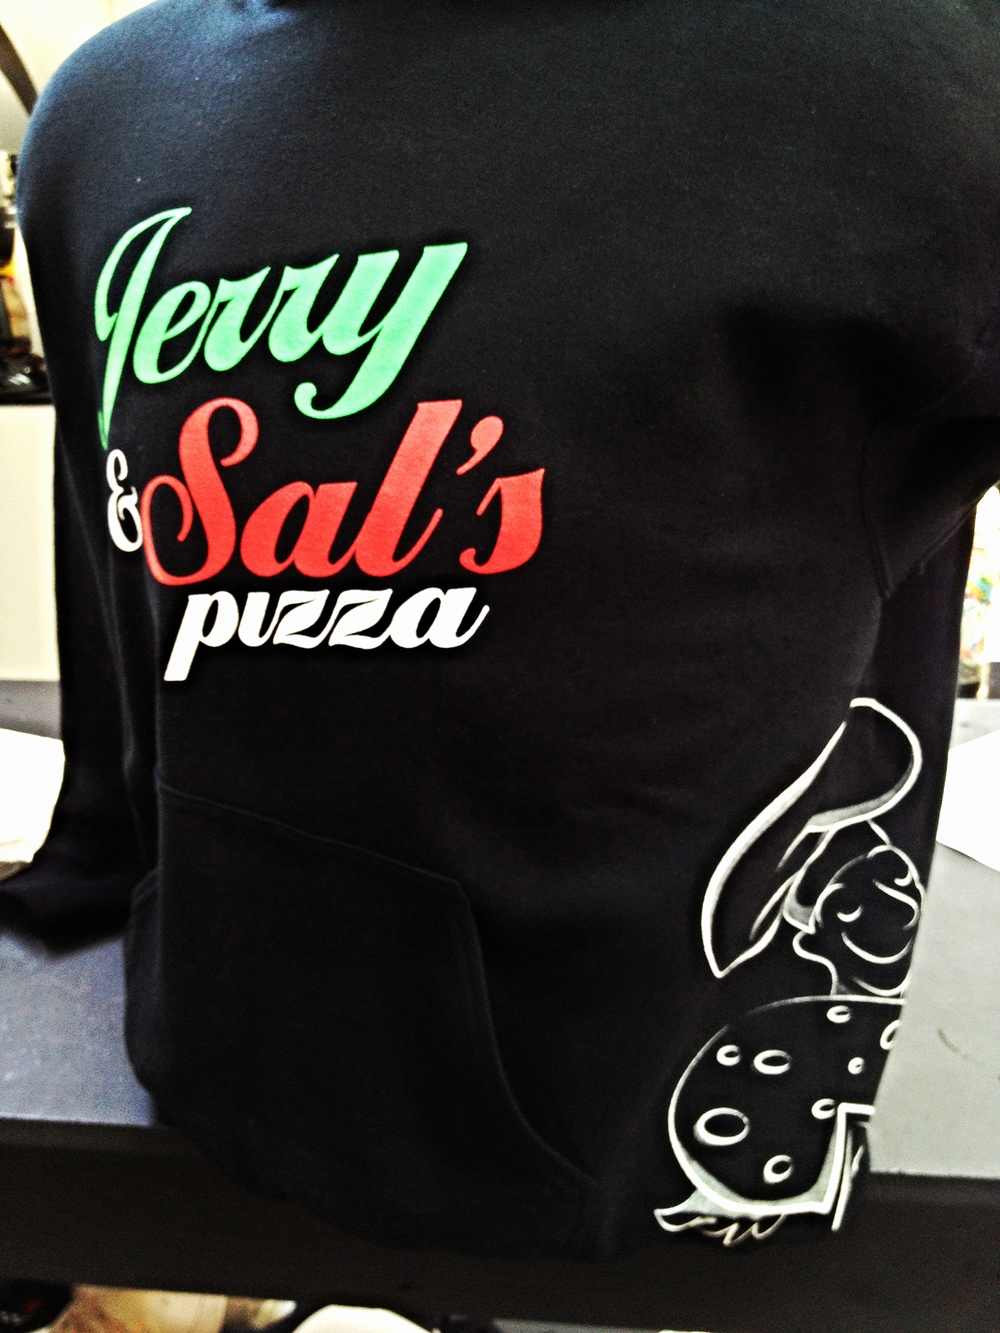 Screen Printing | Jerry & Sals Pizza Sweatshirt | Hanover, PA